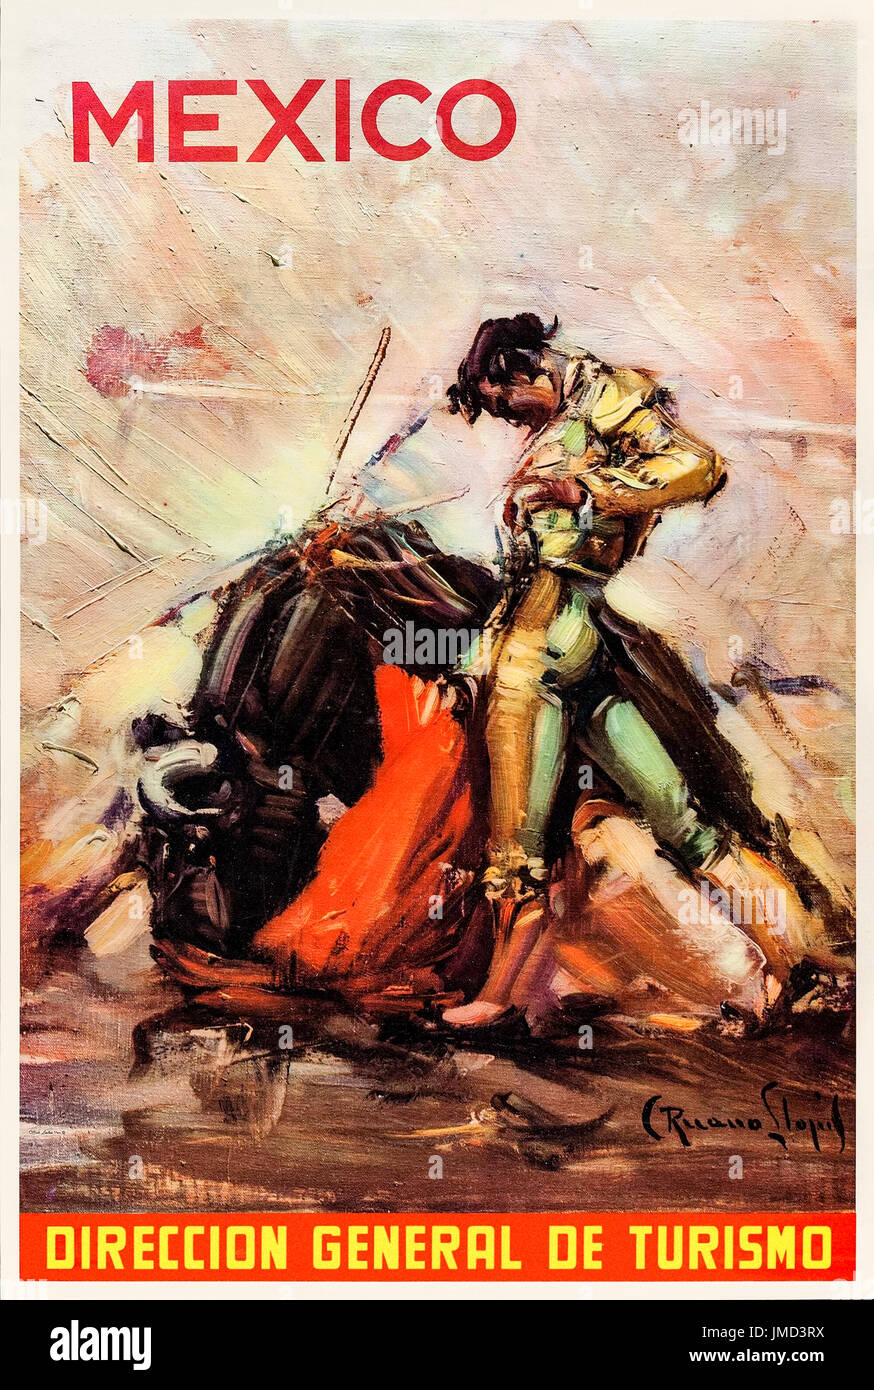 'Mexico – Direccion General de Turismo' Tourism Poster released circa 1959 by the Mexican Secretary of Tourism featuring a painting of a Matador and bull by Spanish artist Carlos Ruano Llopis (1879-1950). - Stock Image